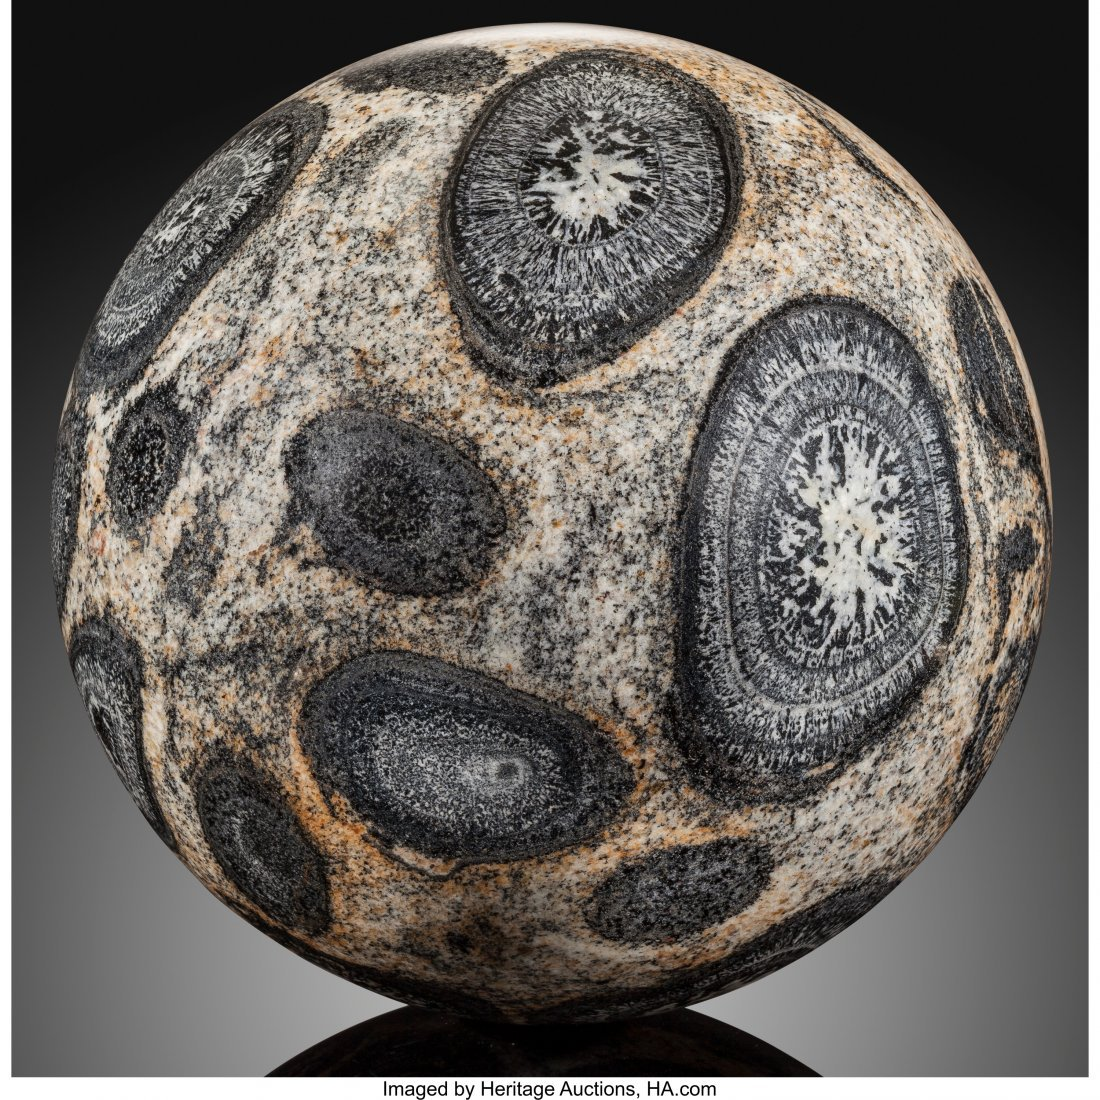 72069: Orbicular Granite Sphere Stone Source: Mount Mag